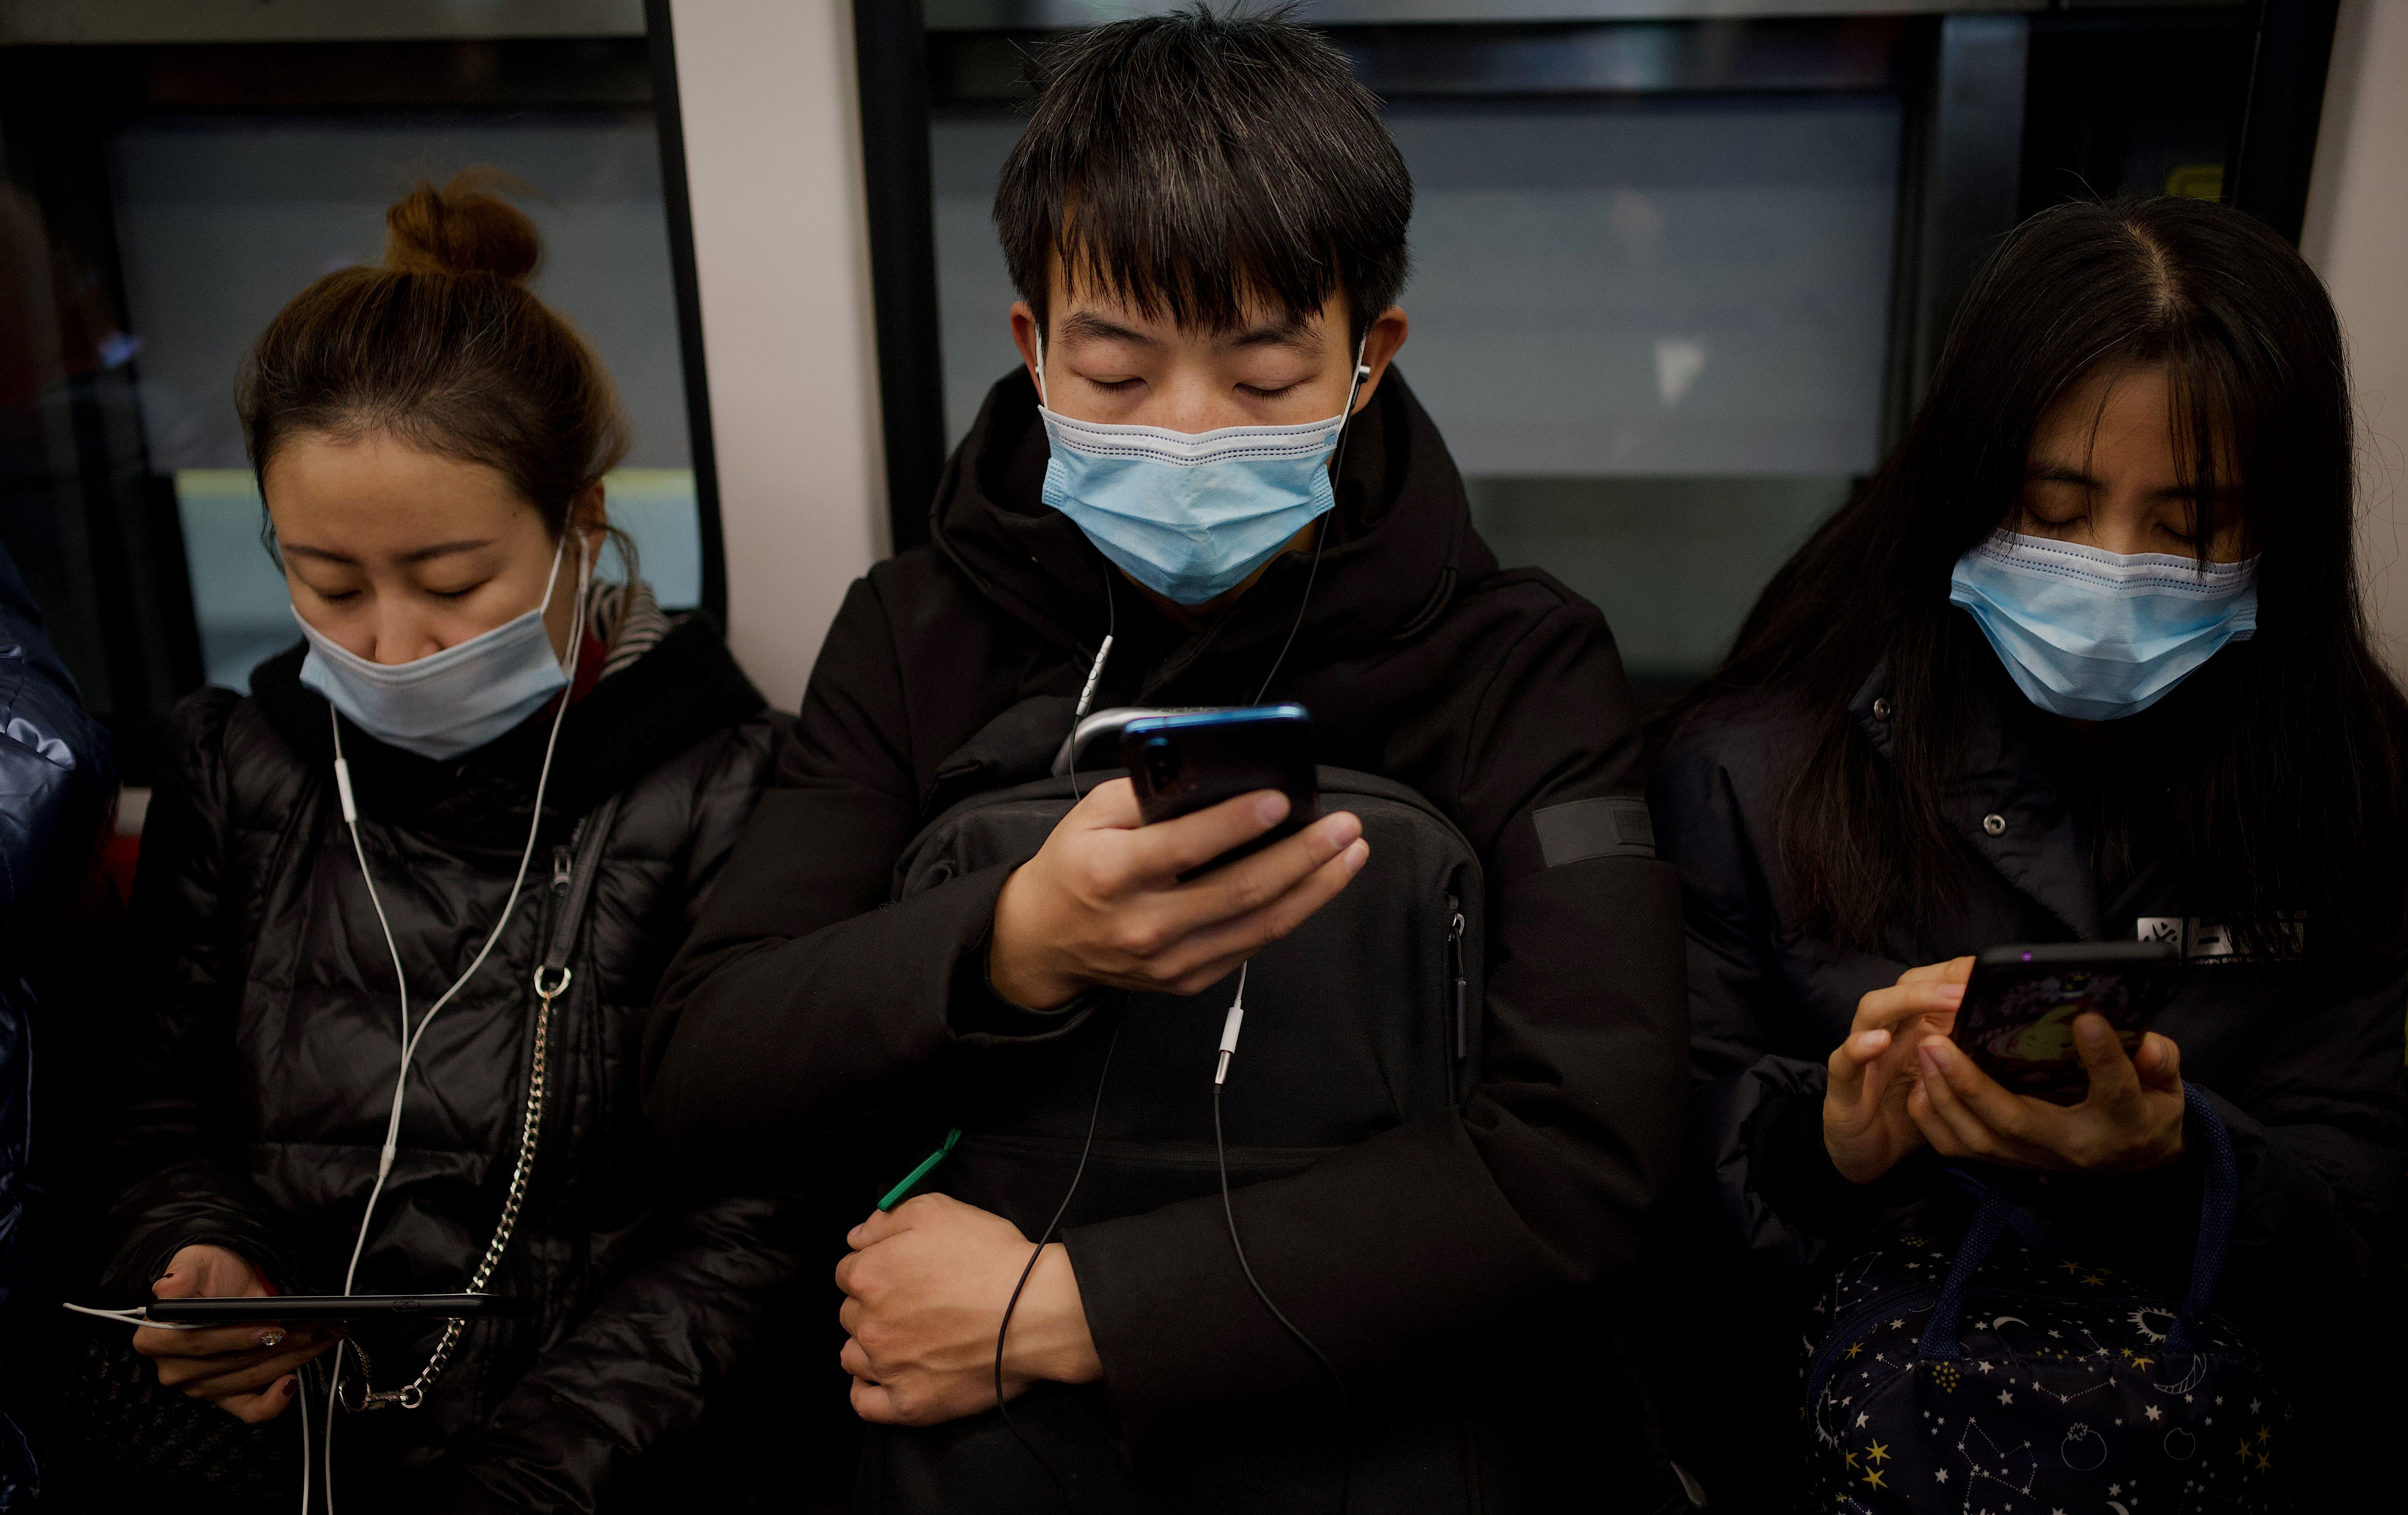 Lives, spirits of drifters in Beijing mirrored in epidemiological survey